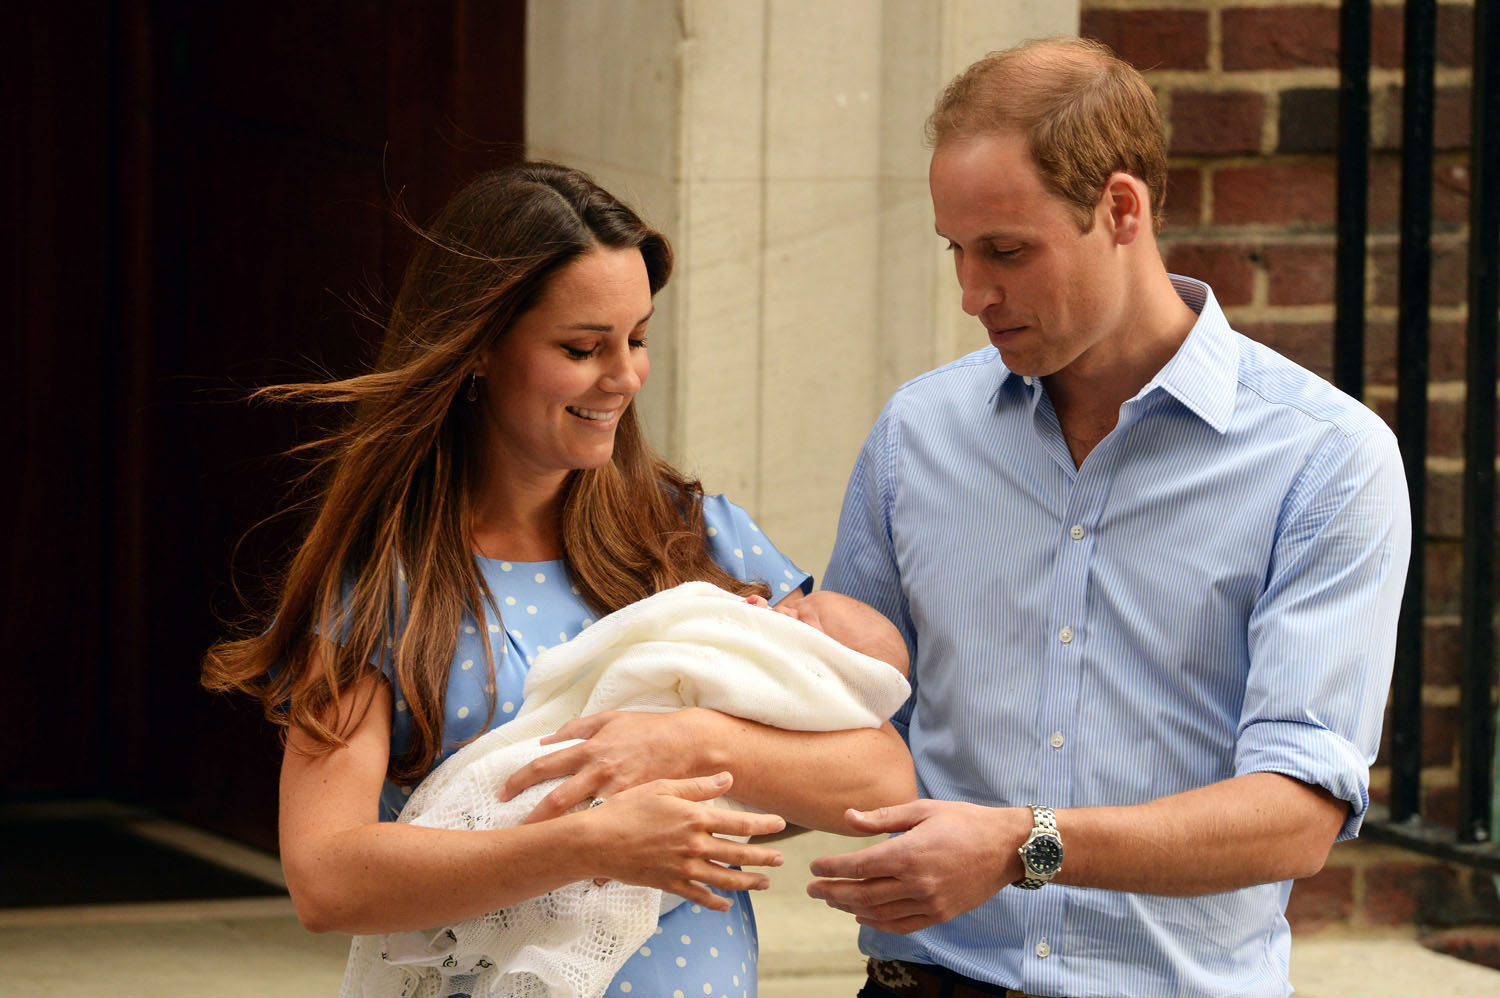 Prince William, Duke of Cambridge and Catherine, Duchess of Cambridge, depart The Lindo Wing with their newborn son, Prince George, at St Mary's Hospital in London on July 23, 2013.